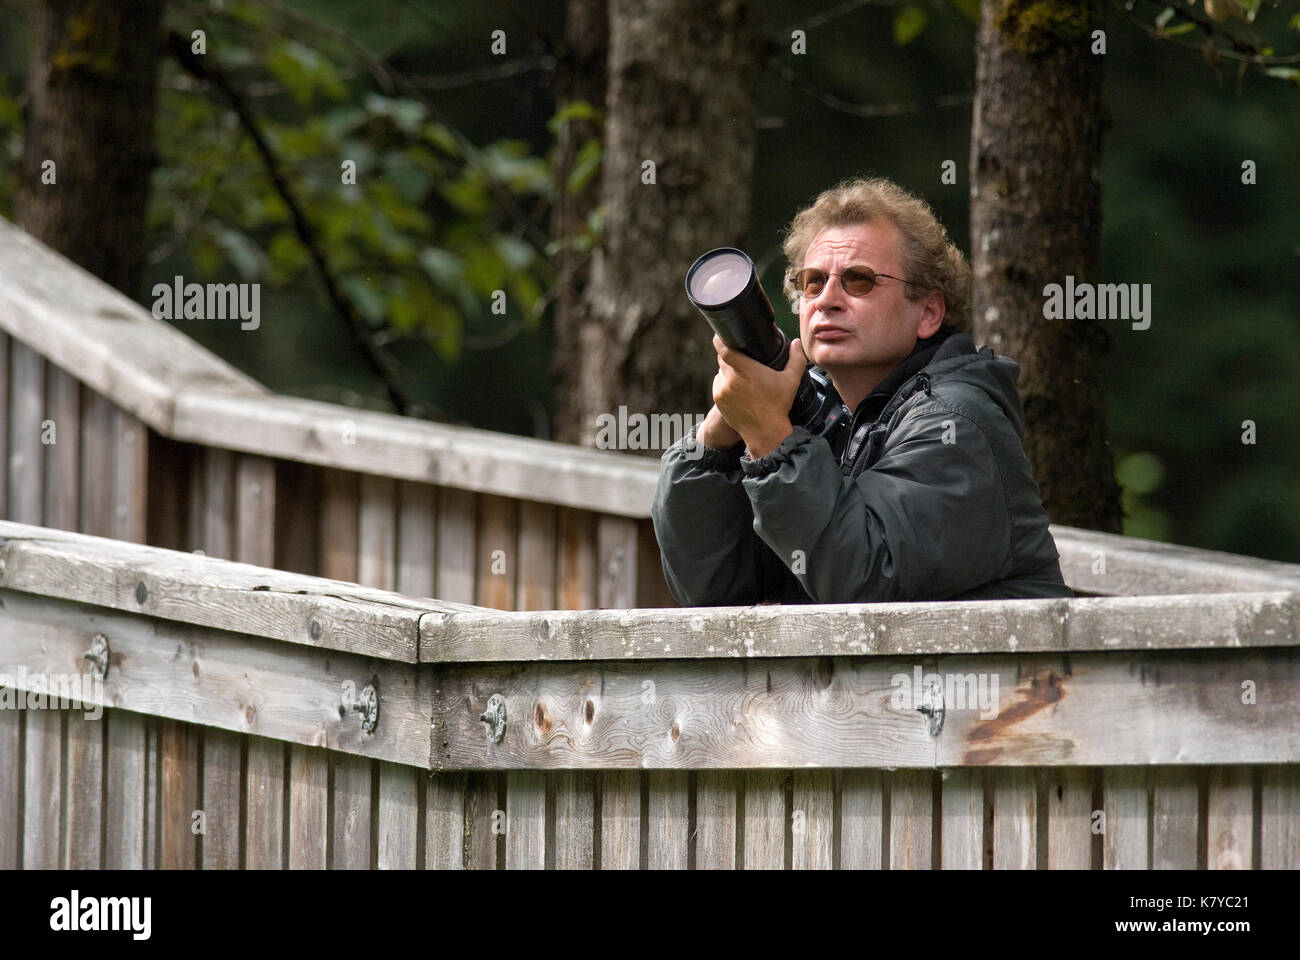 Photographer at Fish Creek Wildlife Observation Site, Tongass National Forest, Hyder, Alaska, USA - Stock Image